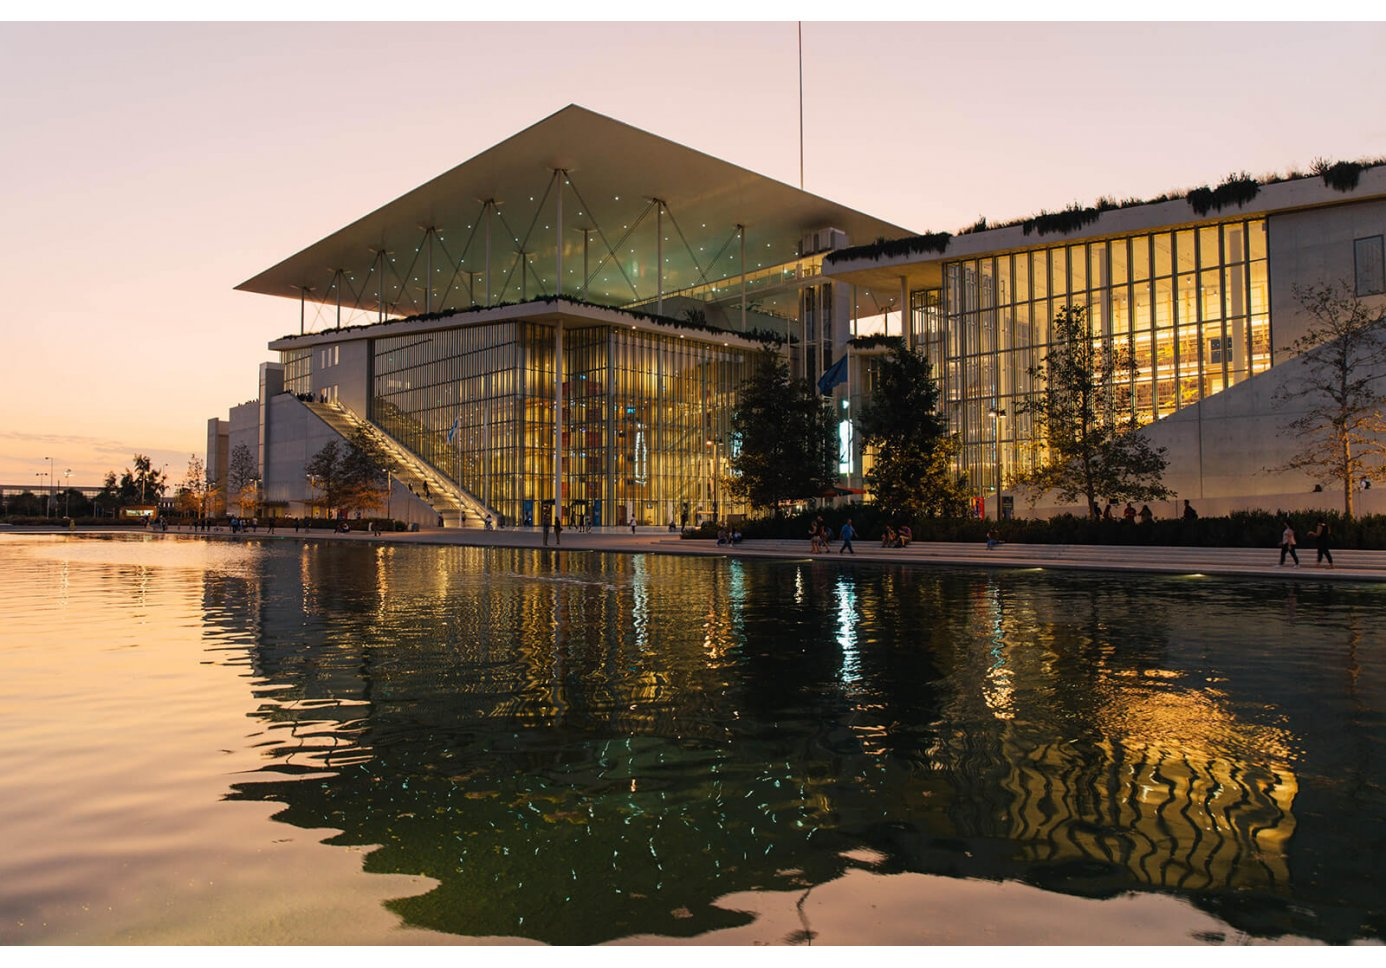 The stavros niarchos foundation cultural center and its canal at susnet.